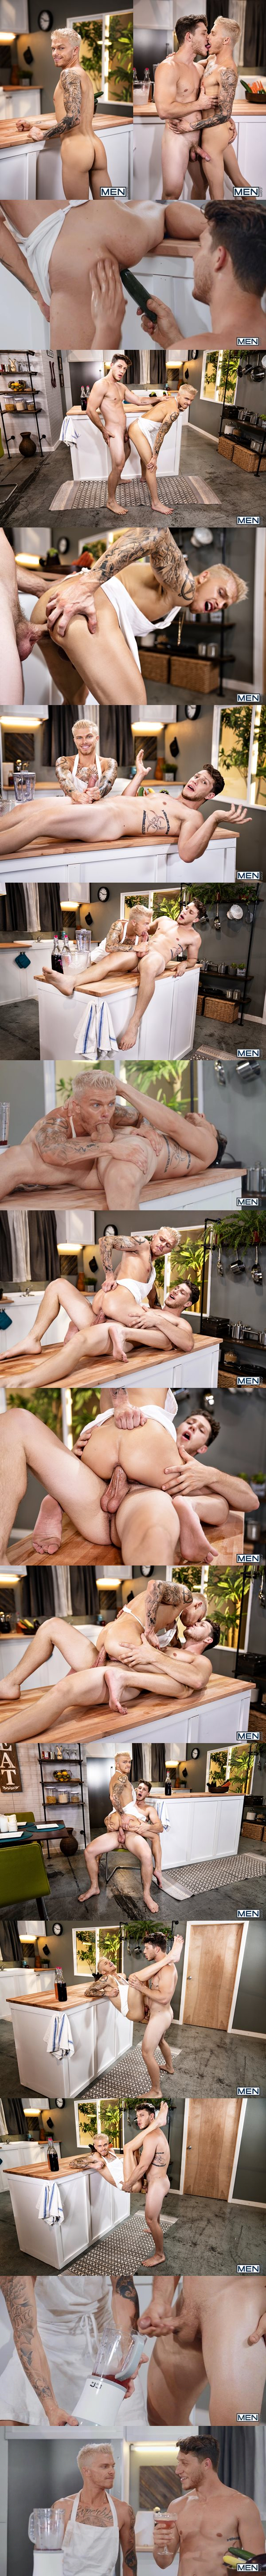 Paul Canon barebacks long time top only gay porn star Blake Ryder's tight bubble ass until he cums into a blender in a chef theme scene in Blake's bottoming debut at Men 02